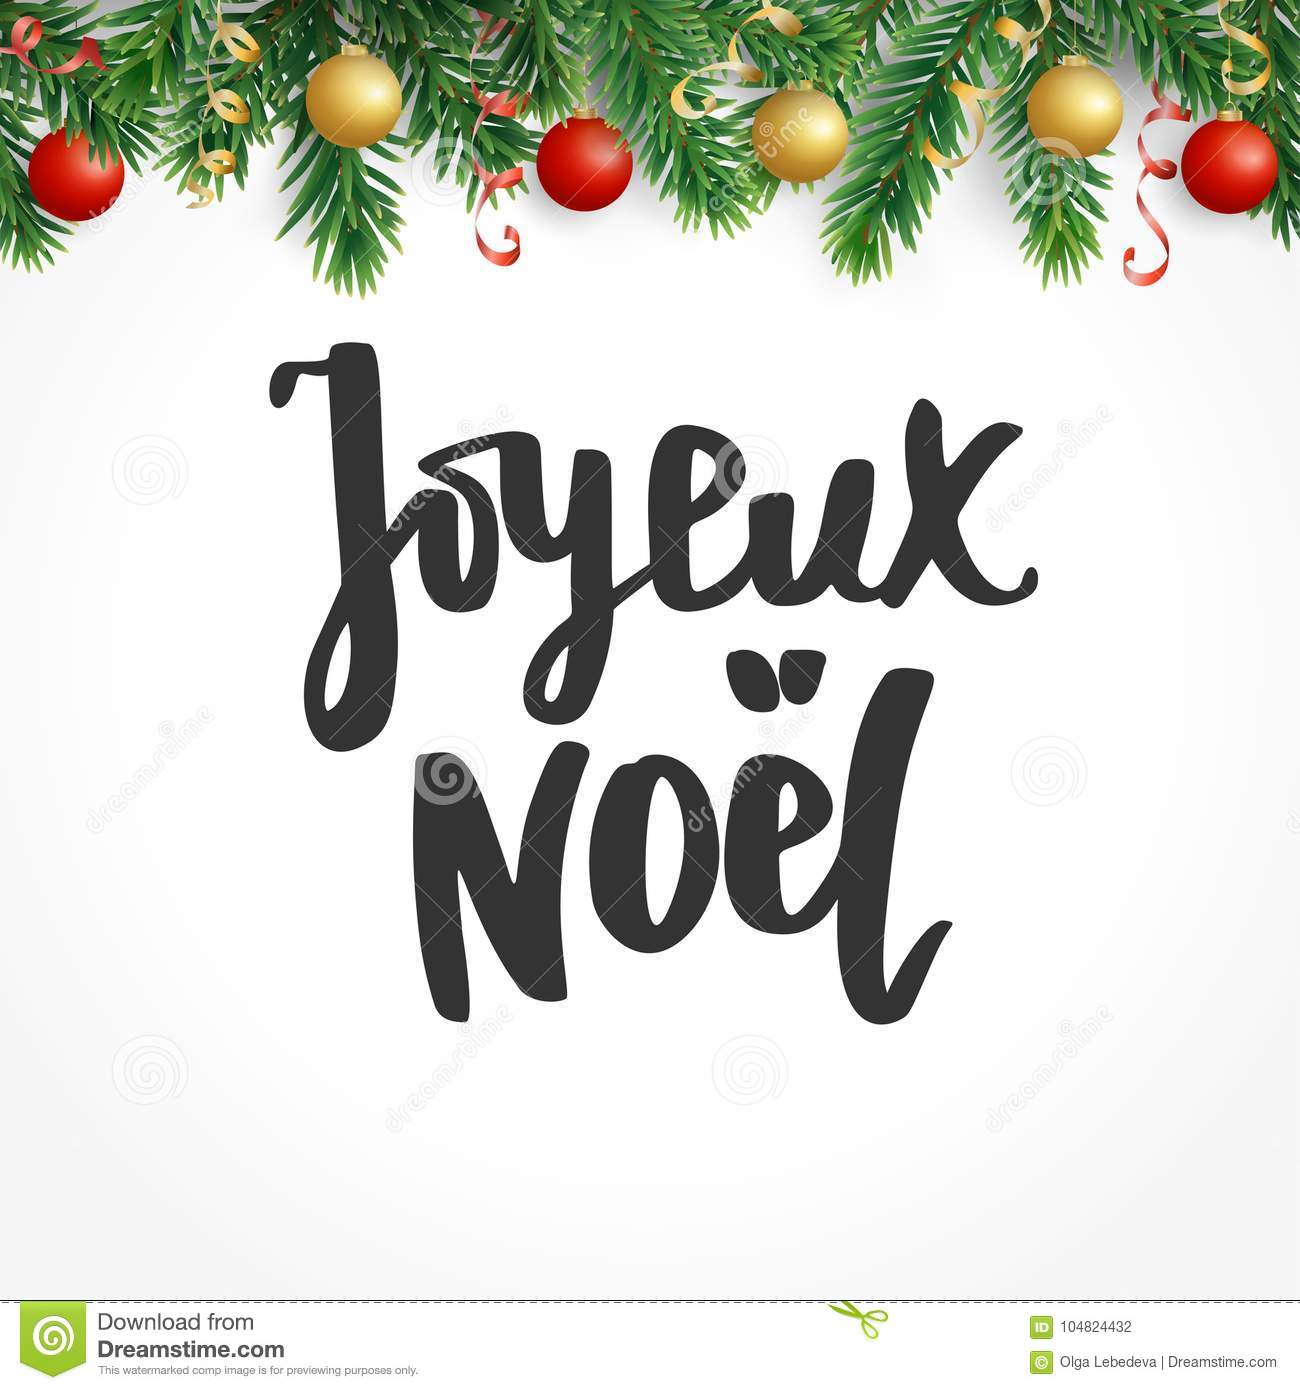 Joyeux Noel Text Holiday Greetings French Quote Fir Tree Branches